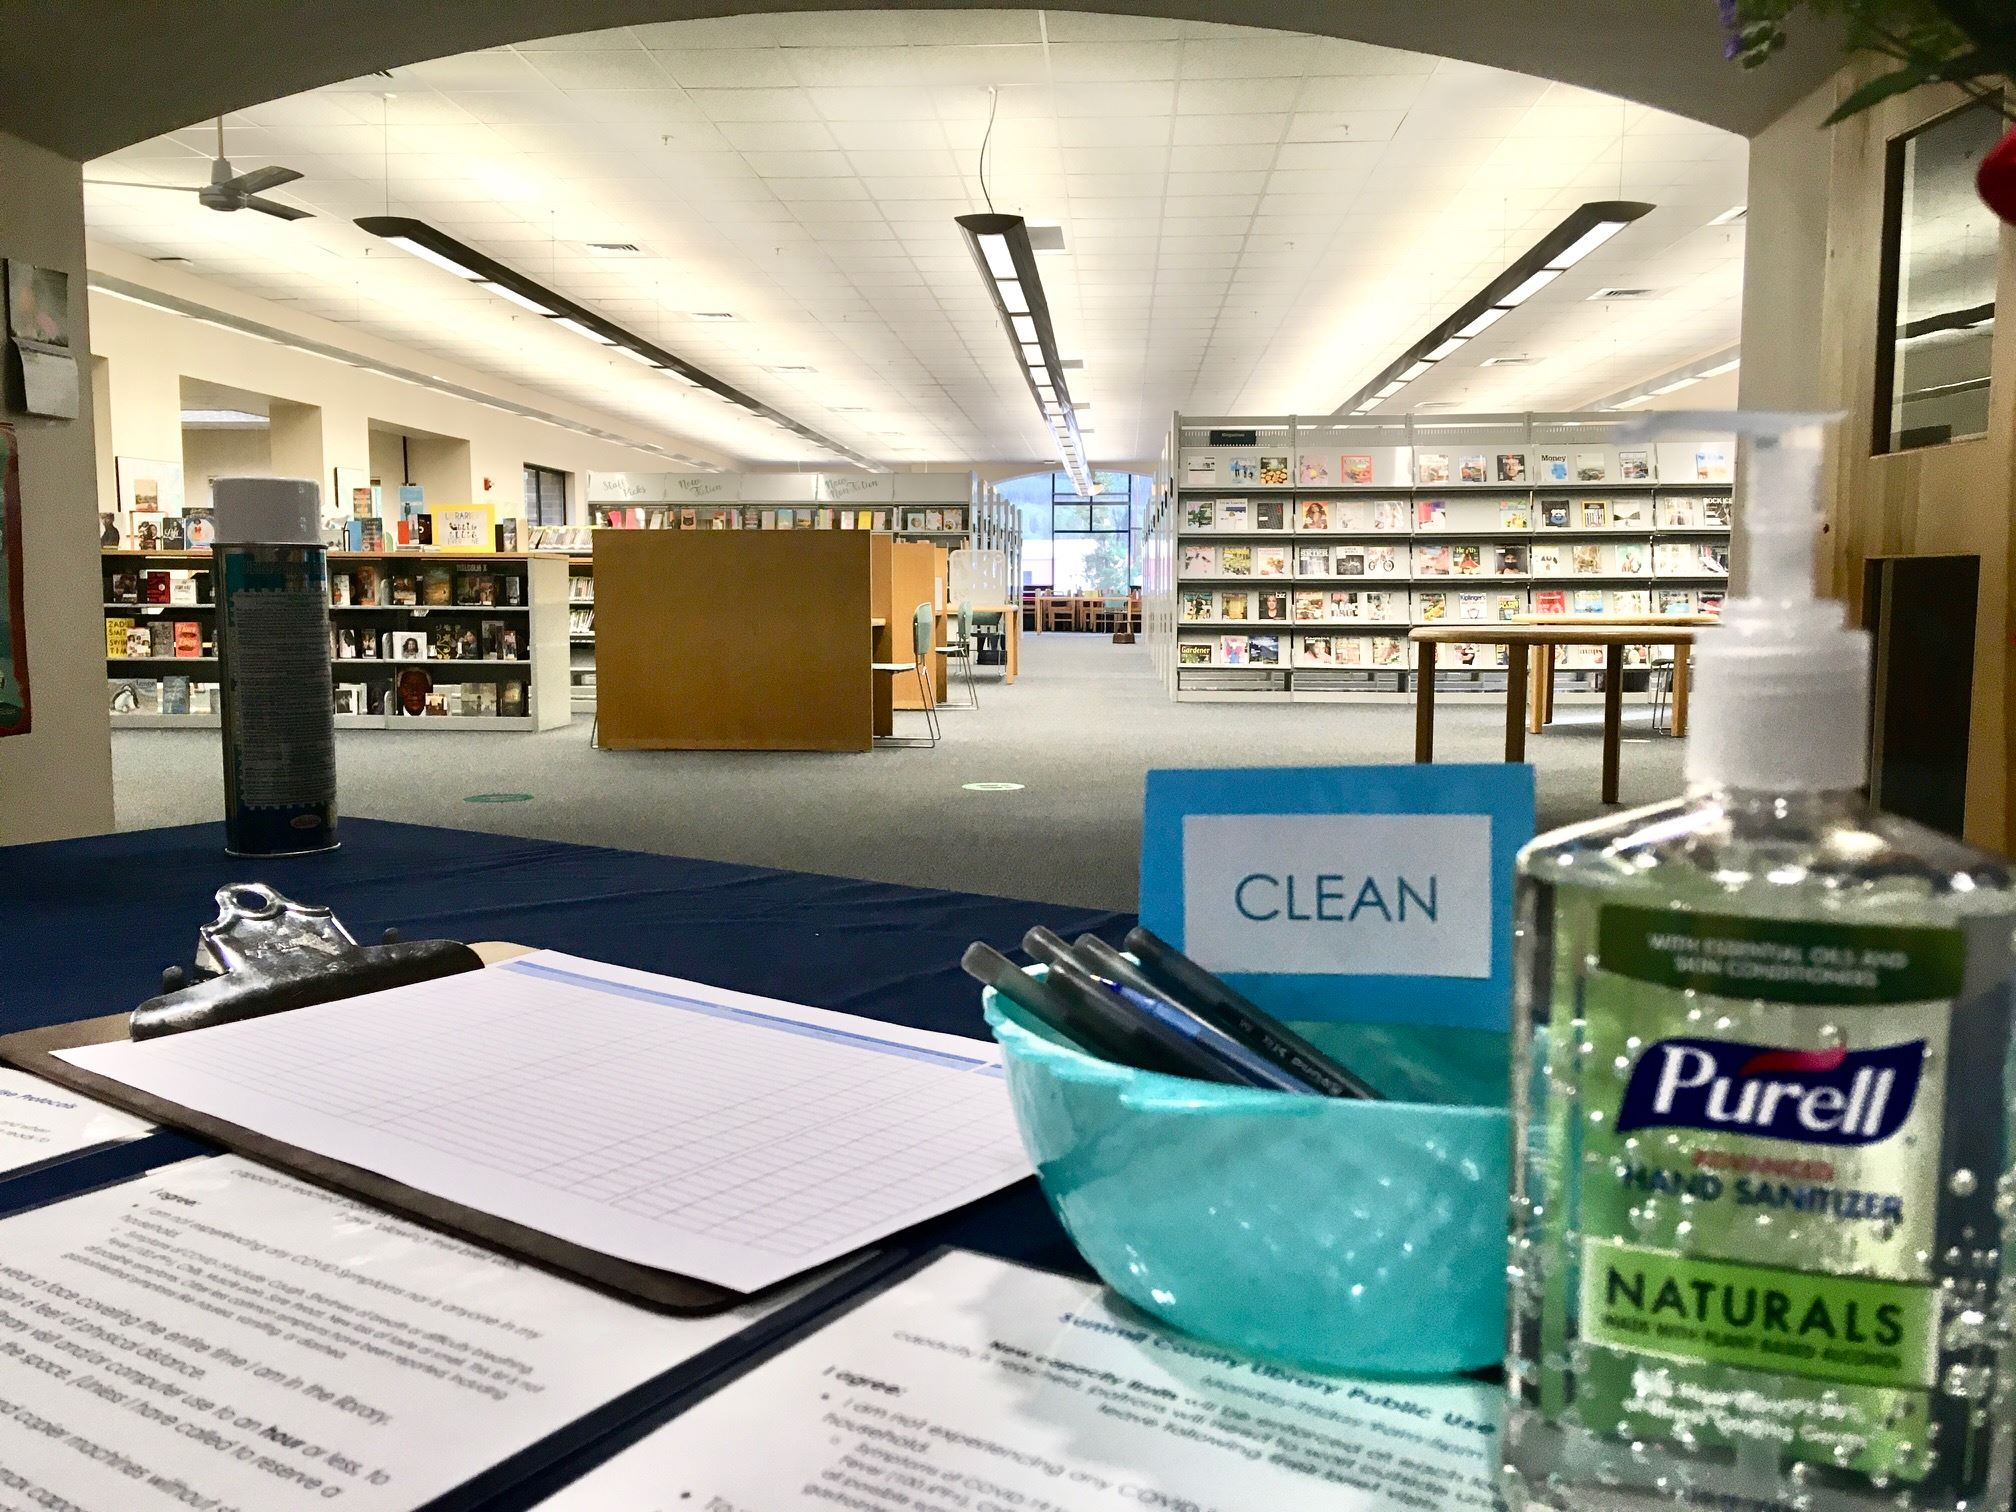 A container of hand sanitizer and a bowl of clean pens at the library entrance.